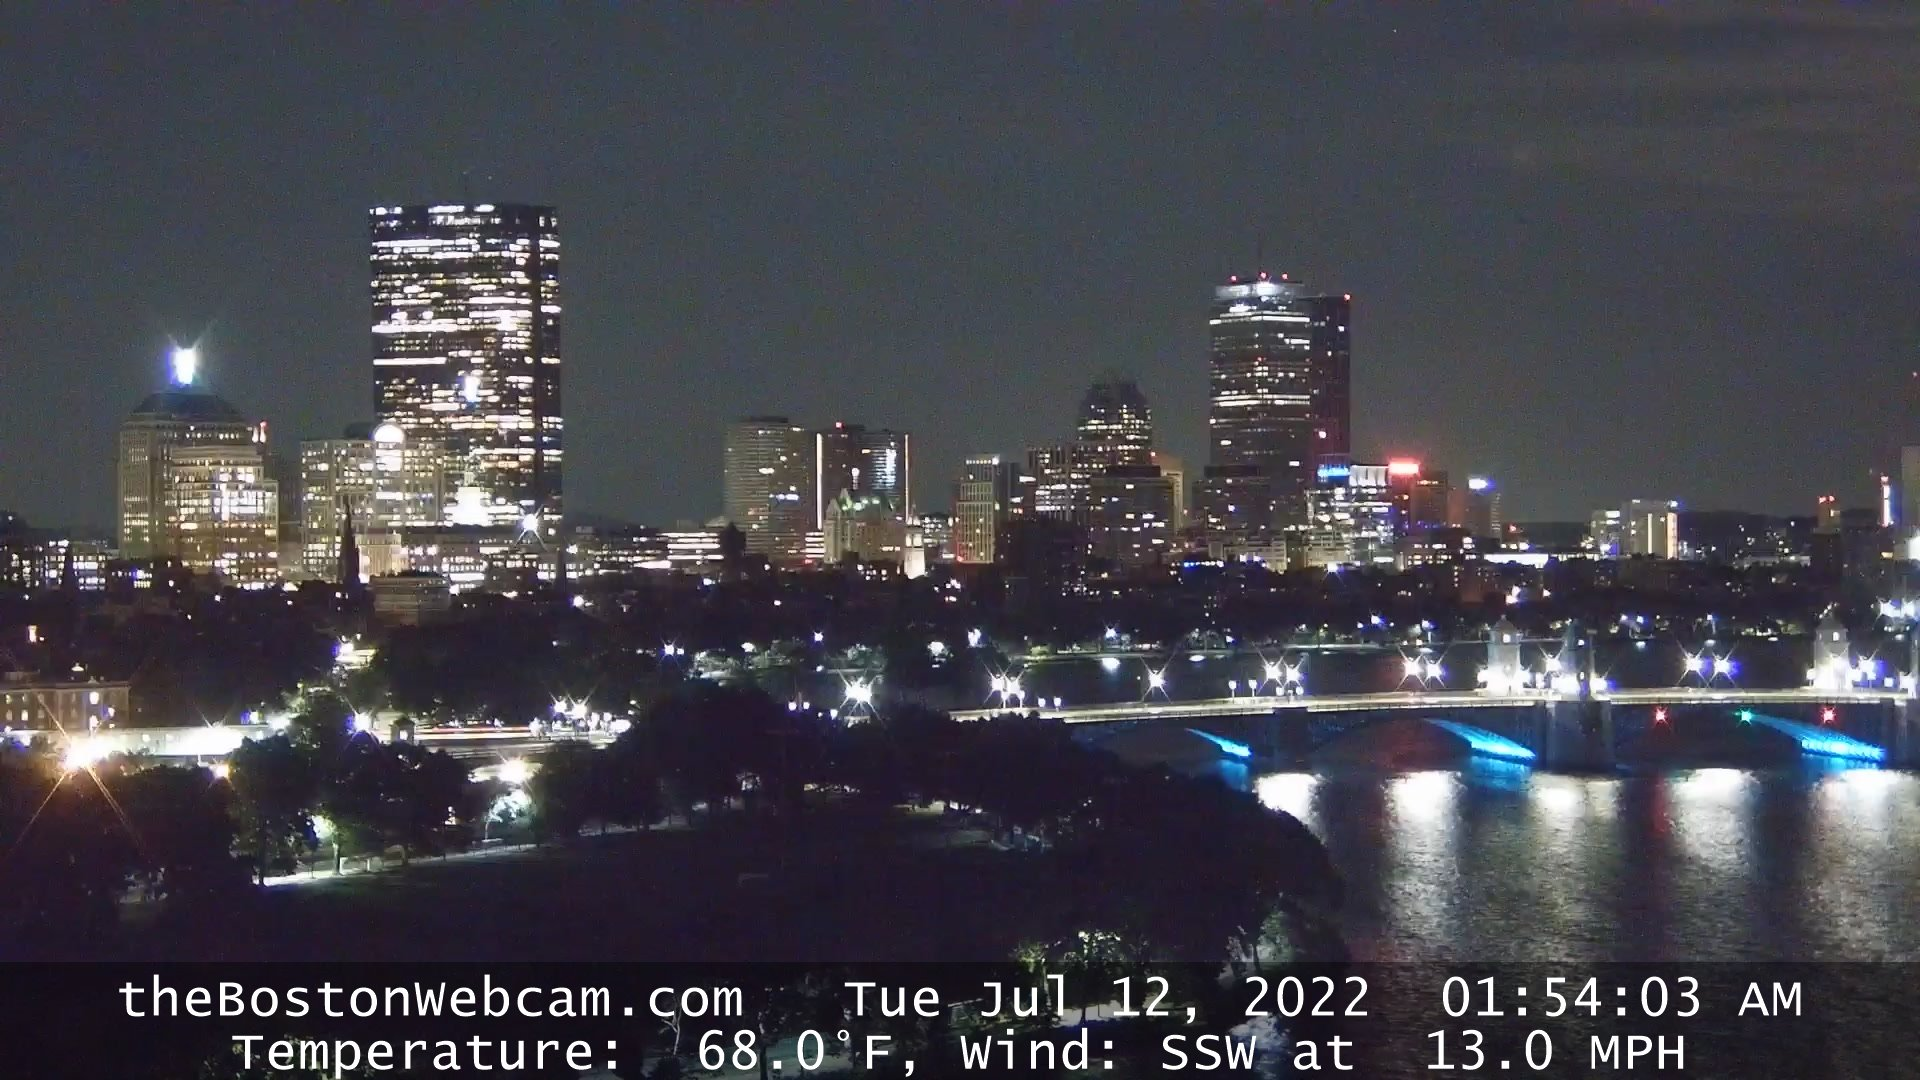 Longfellow Bridge Over Charles River